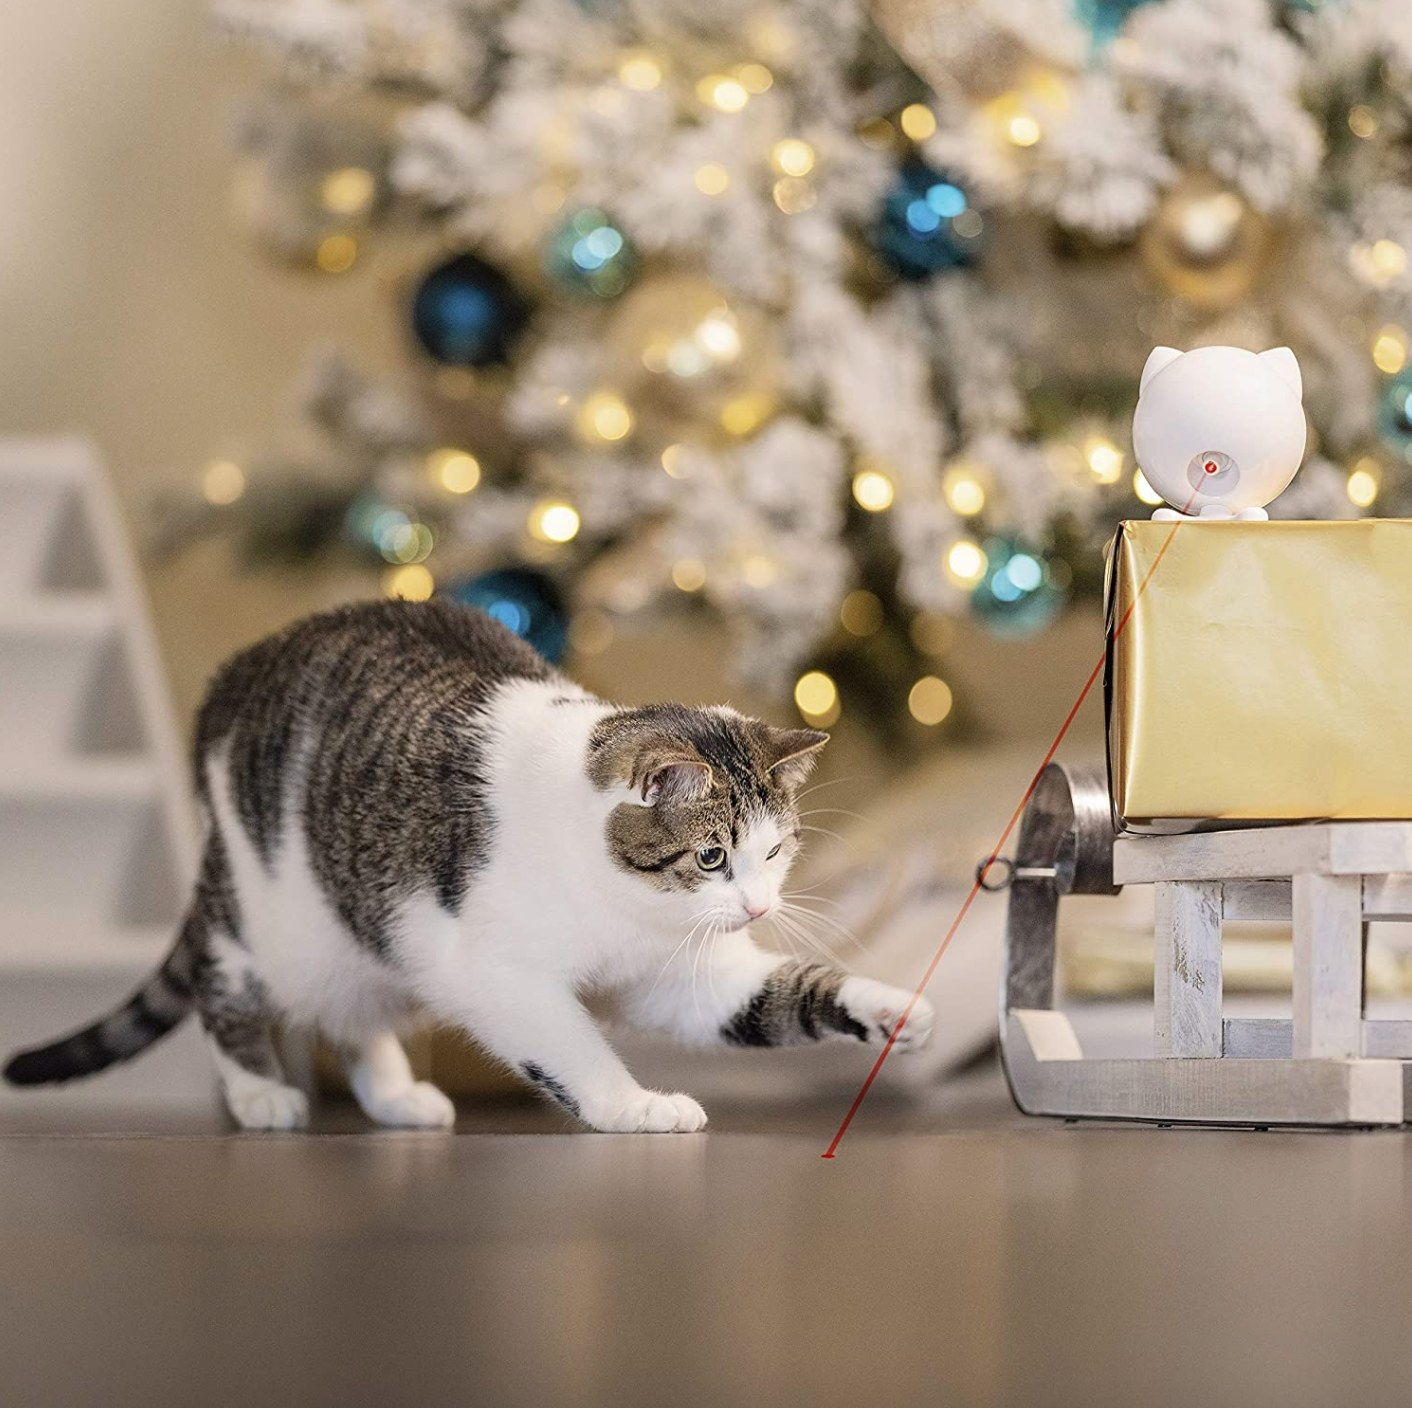 The interactive cat toy laser